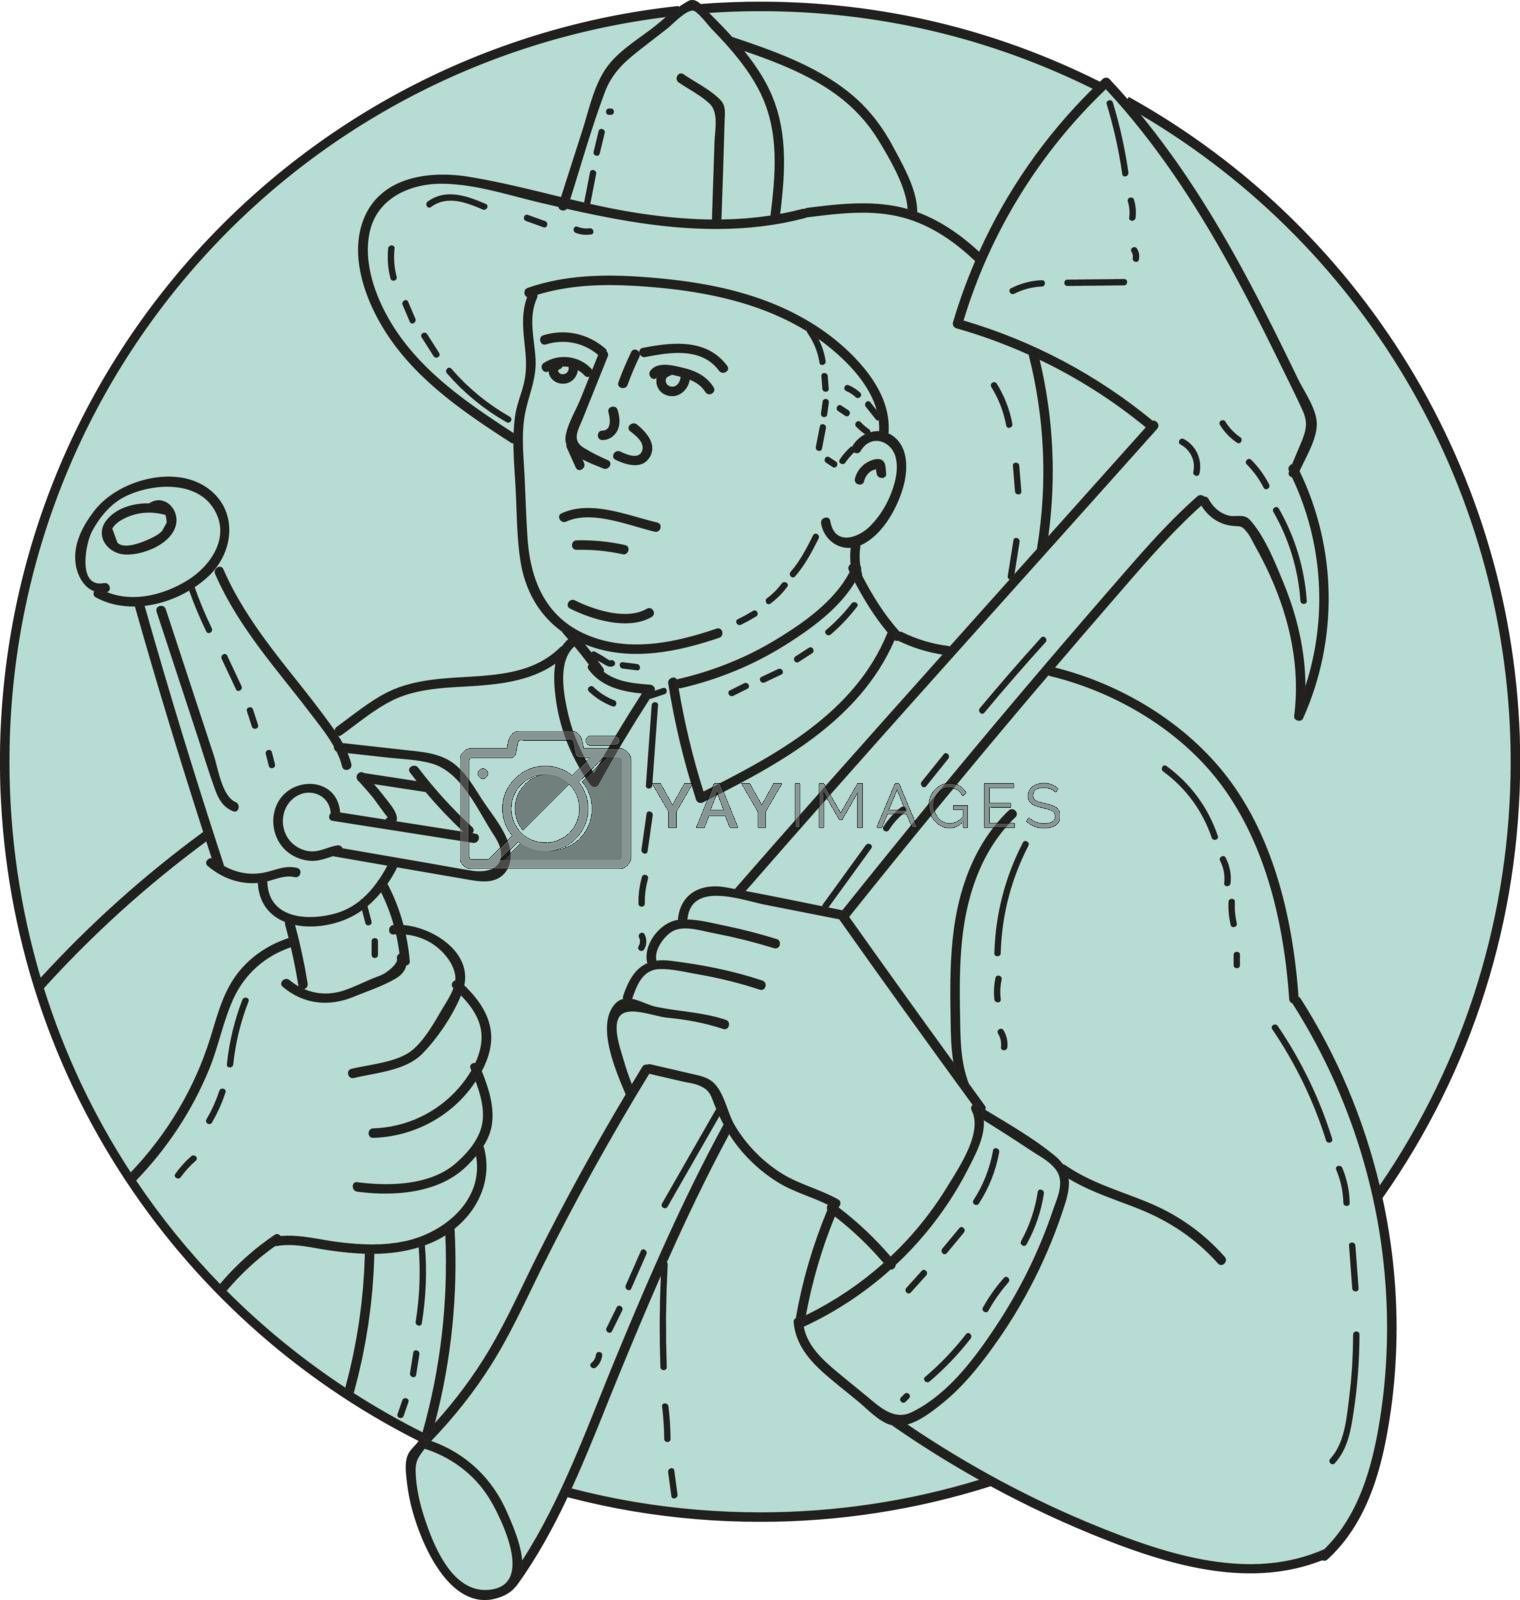 Mono line style illustration of a fireman fire fighter emergency worker looking to the side holding fire hose in one hand and fire axe on the other hand resting on shoulder set inside circle on isolated background.